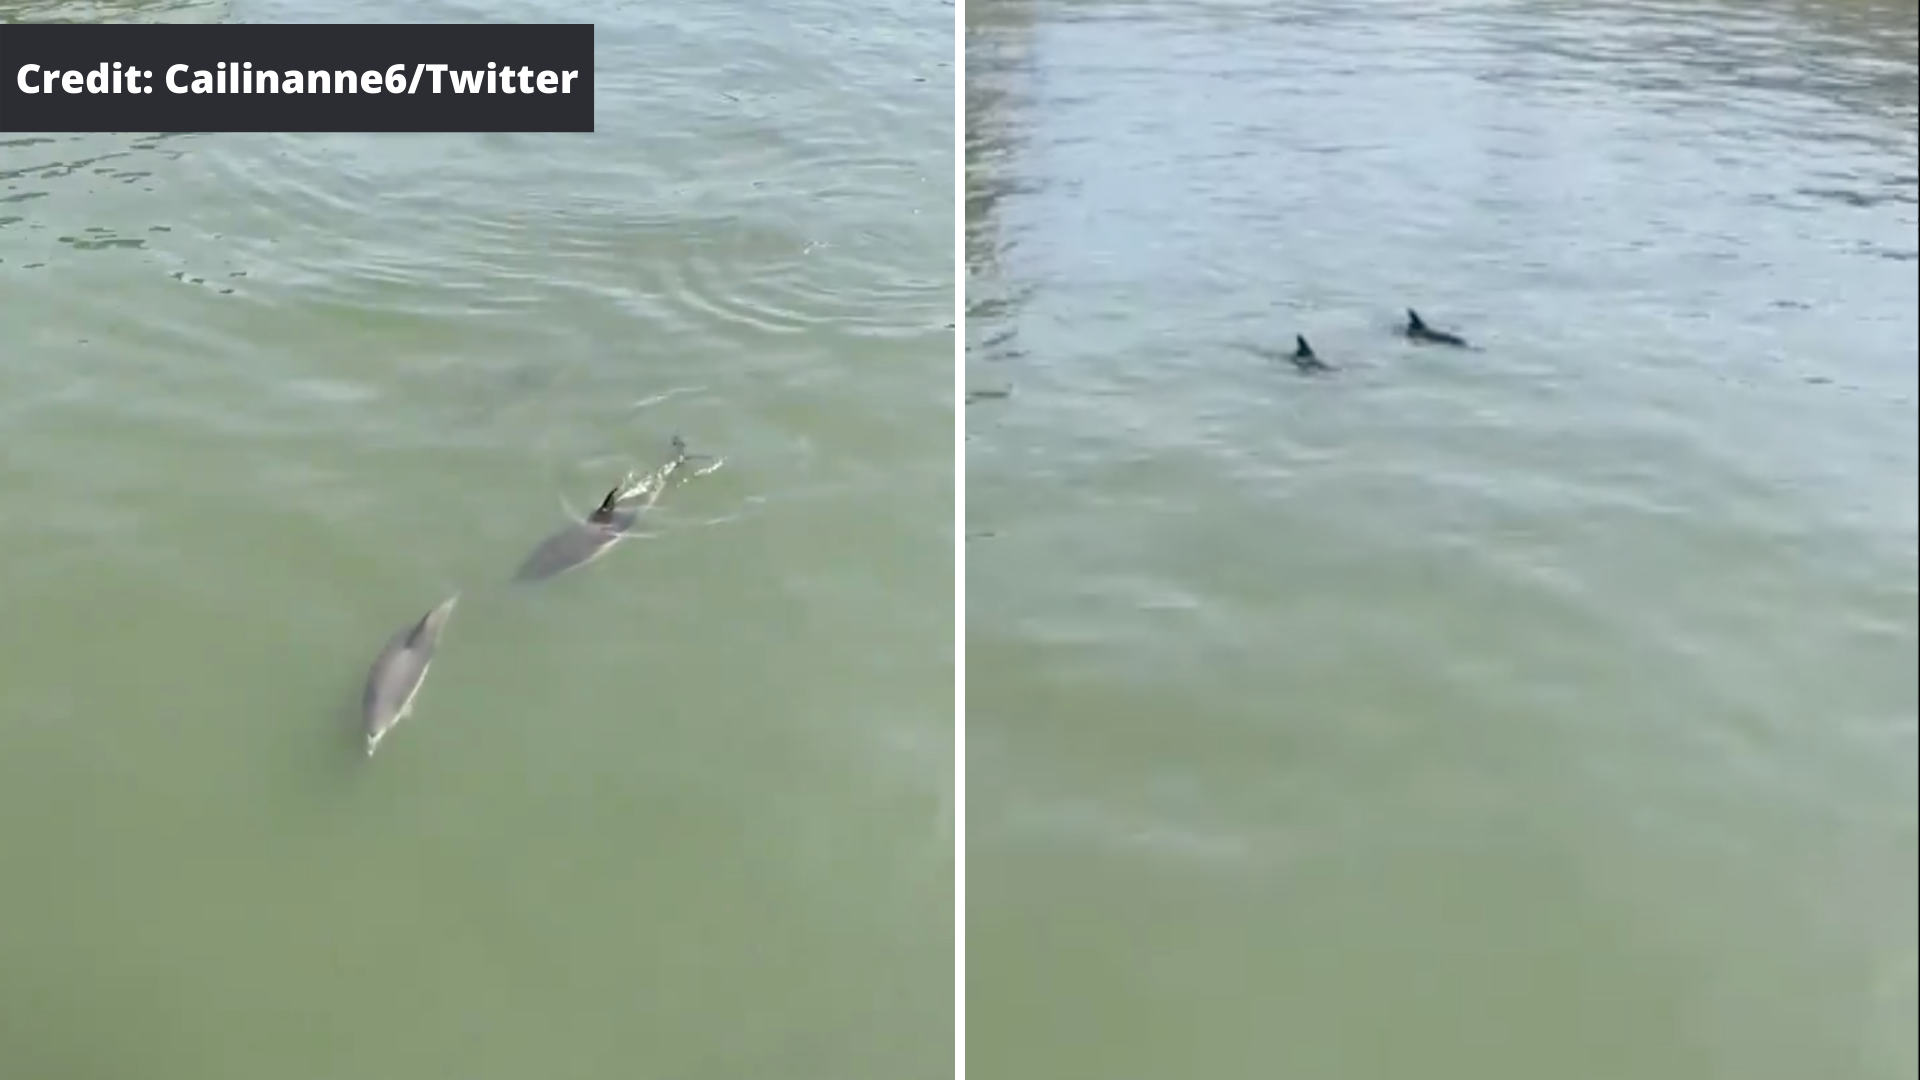 Dolphins in the East River(1)